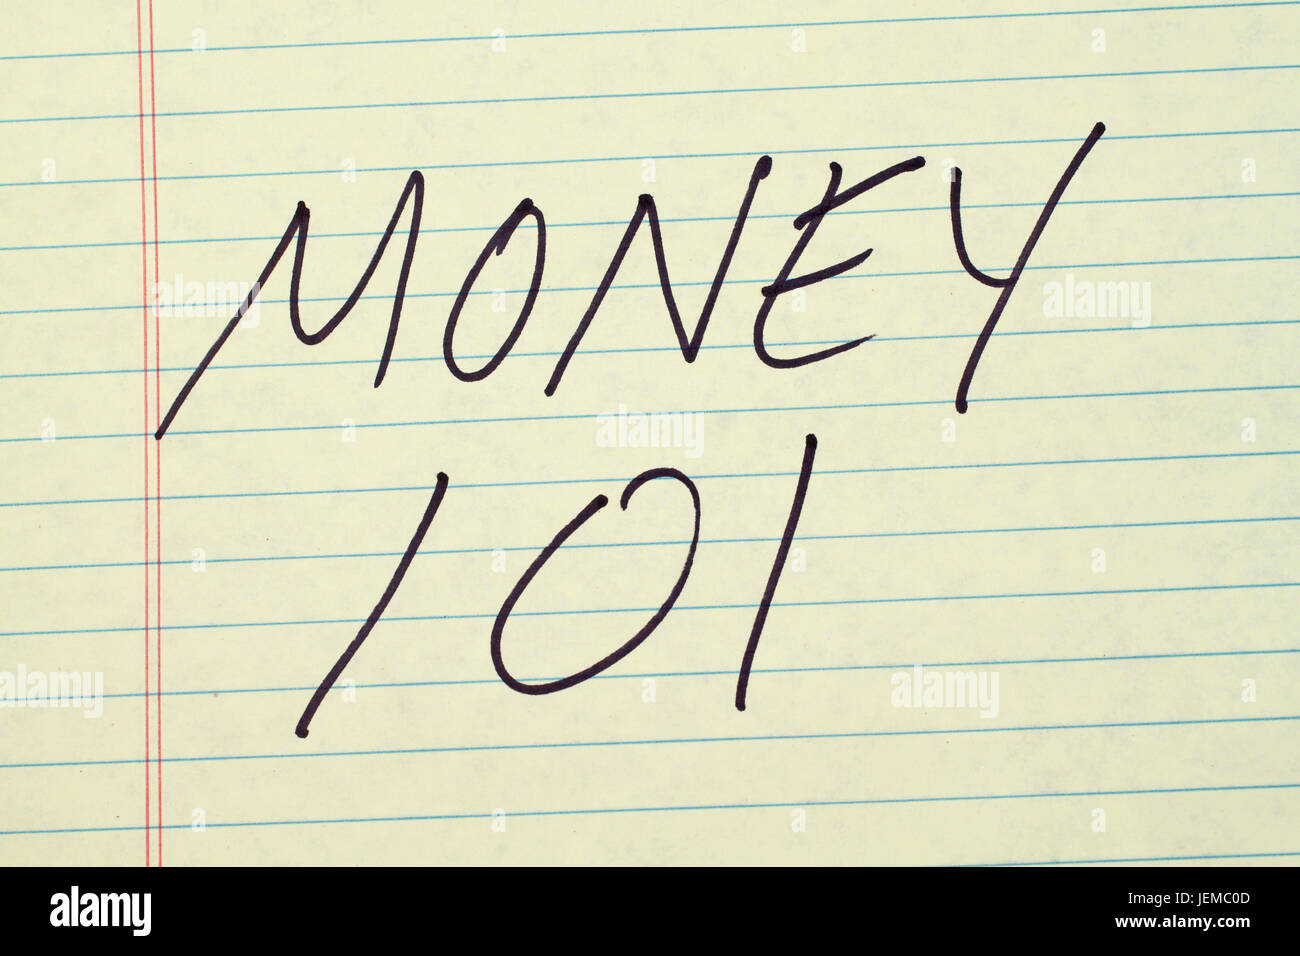 The words 'Money 101' on a yellow legal pad - Stock Image